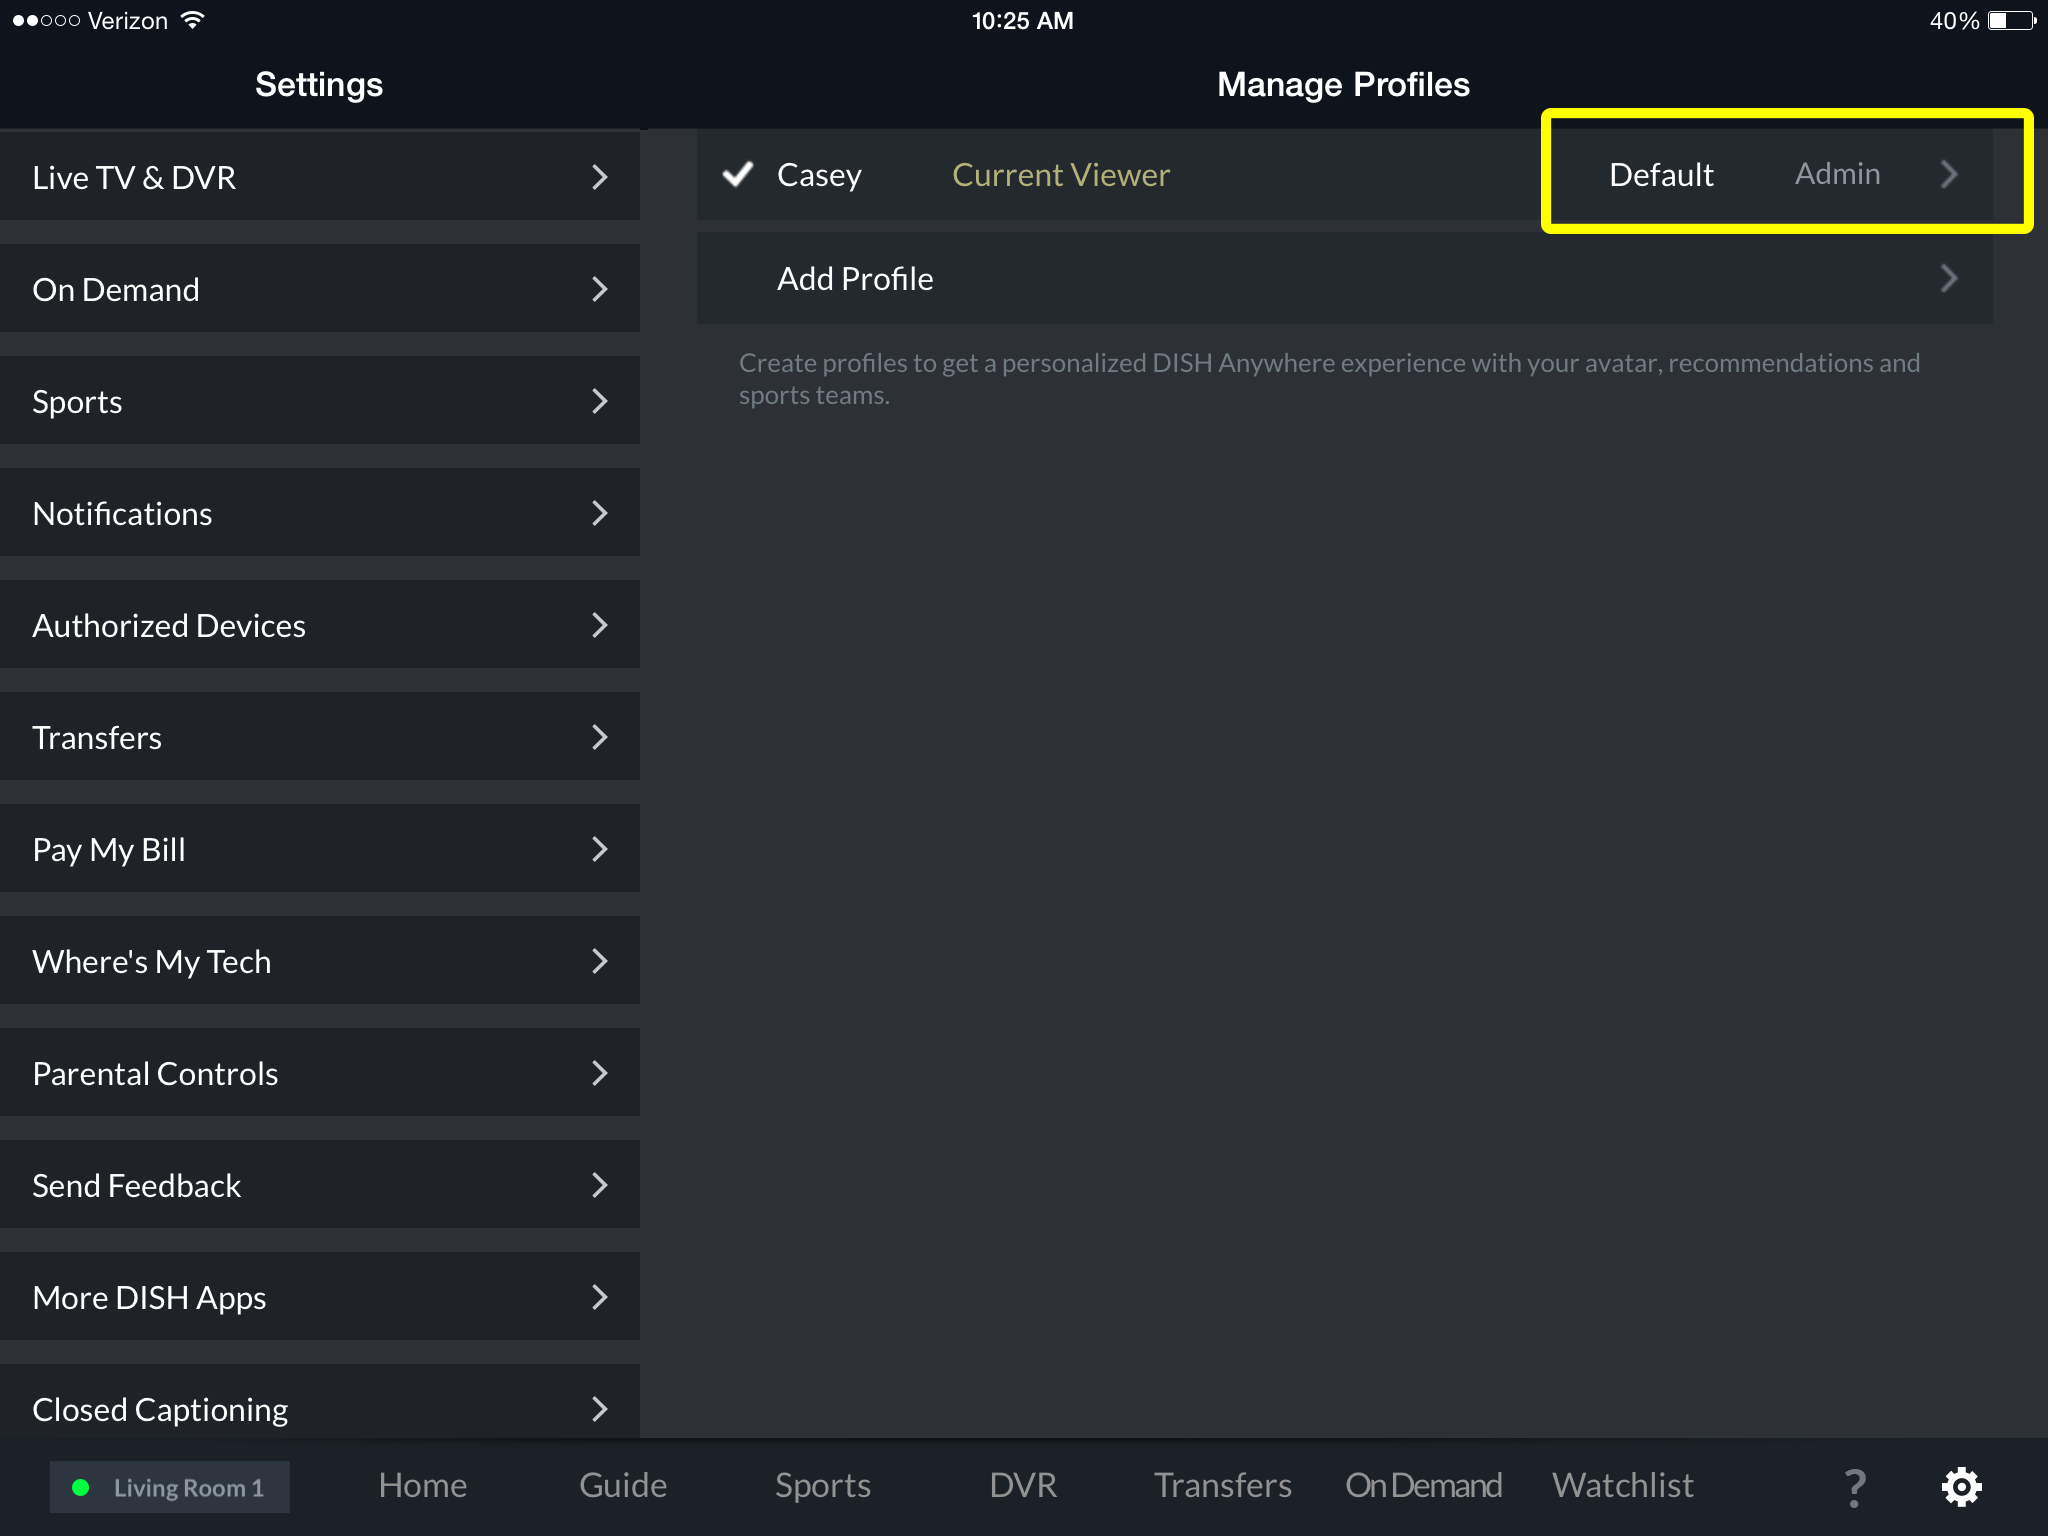 Admin profile showing as selected in DISH Anywhere tablet app